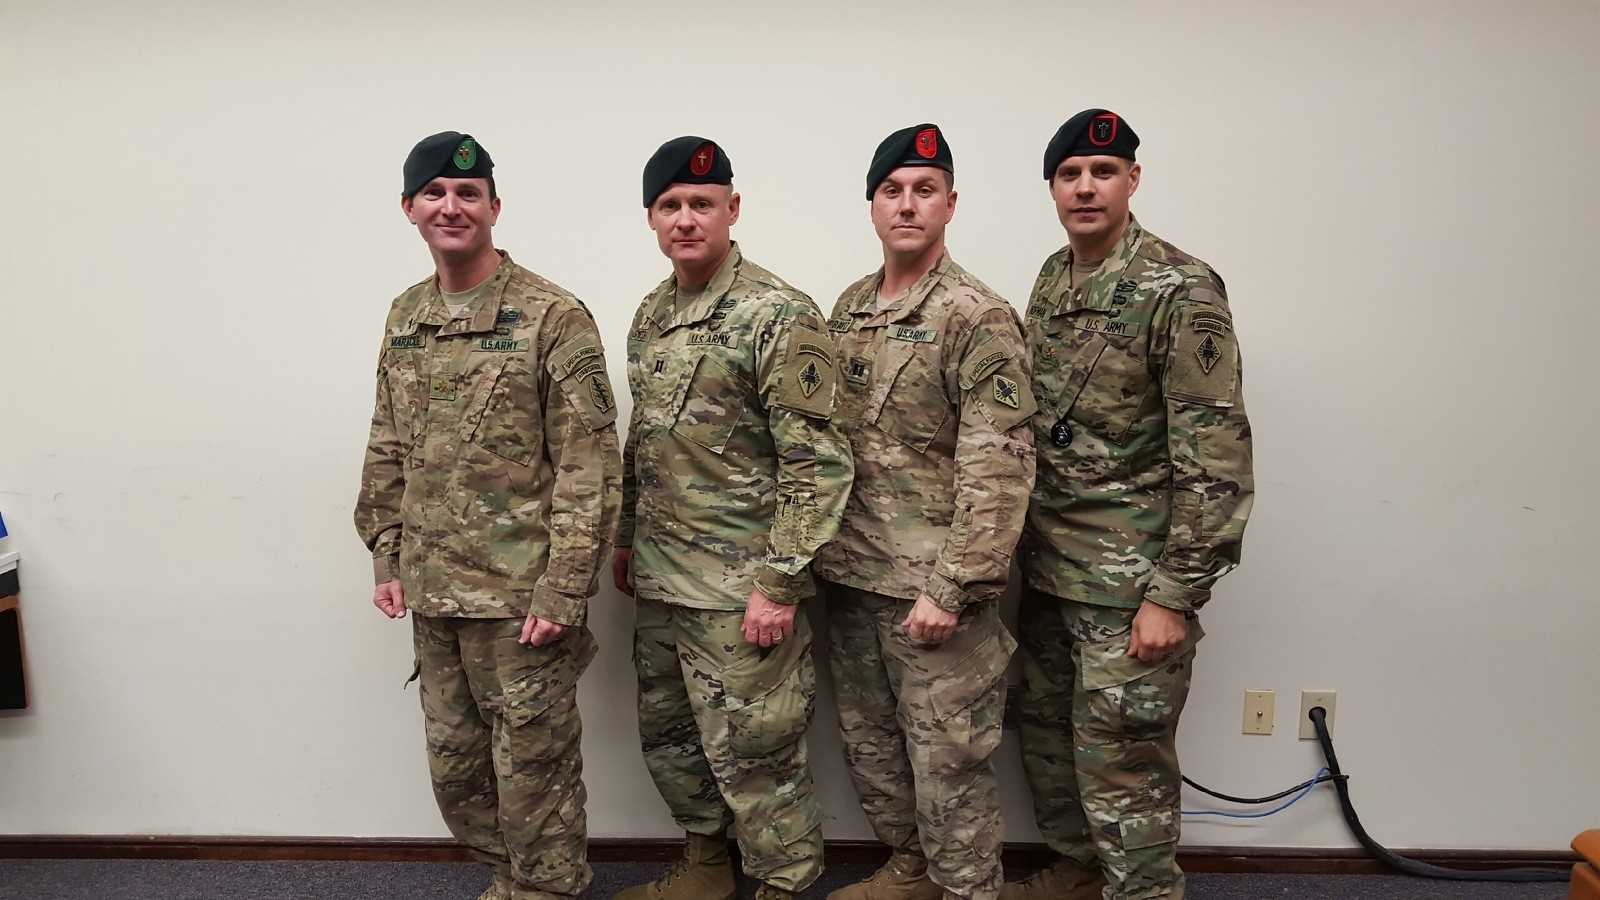 Special Forces Tab Green Beret Sfqc A Vehicle For Chaplains